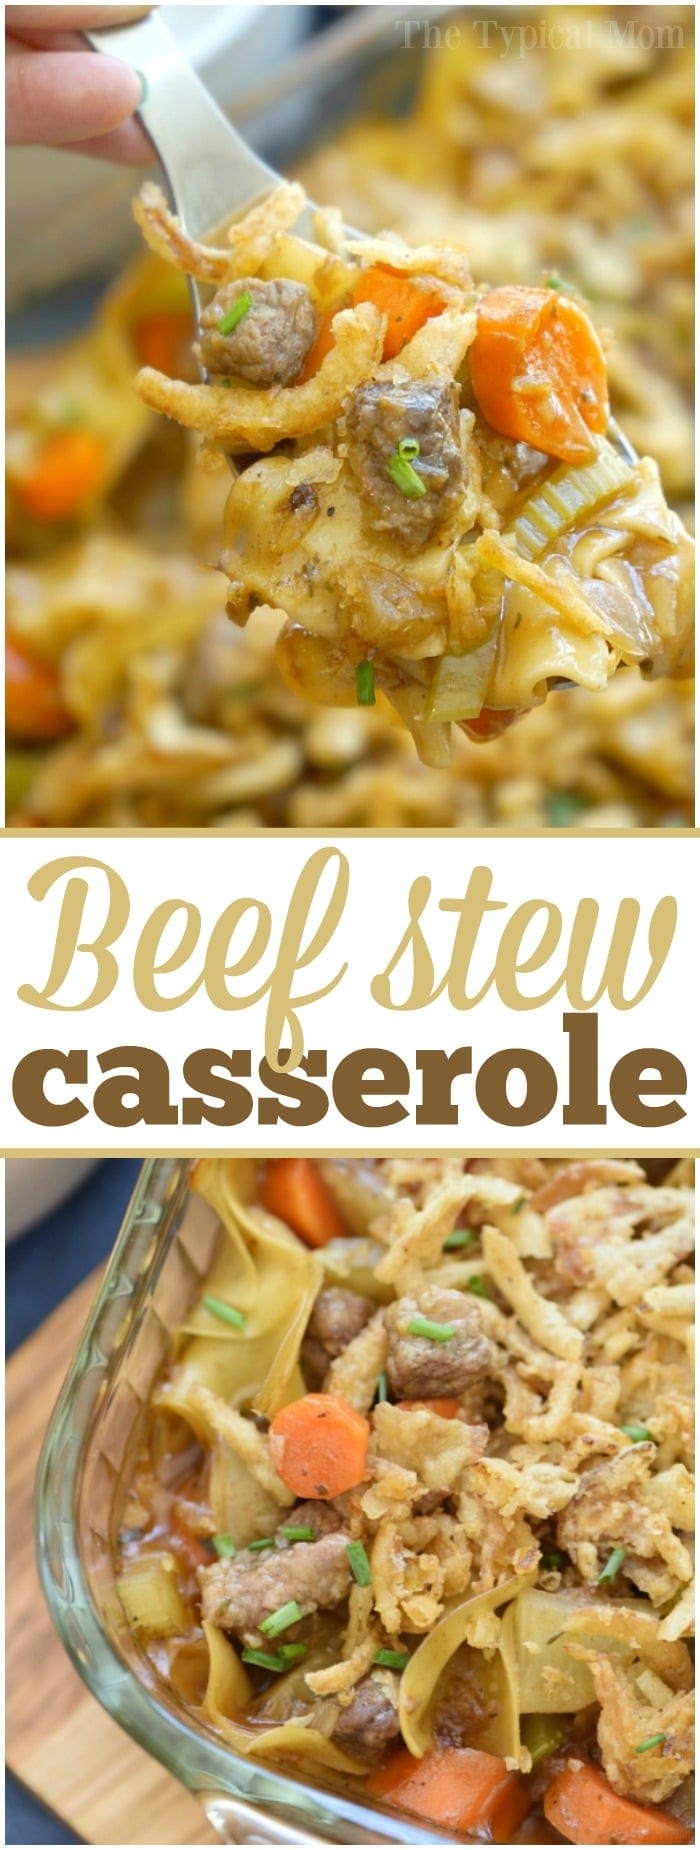 This easy beef stew casserole is comfort food at it's finest!! Packed with tender meat, a thick sauce and lots of vegetables you and your kids are sure to have seconds! Use stew meat or ground beef to make this simple casserole that may become your new family favorite meal. #beef #stew #casserole #easy #vegetable #groundbeef